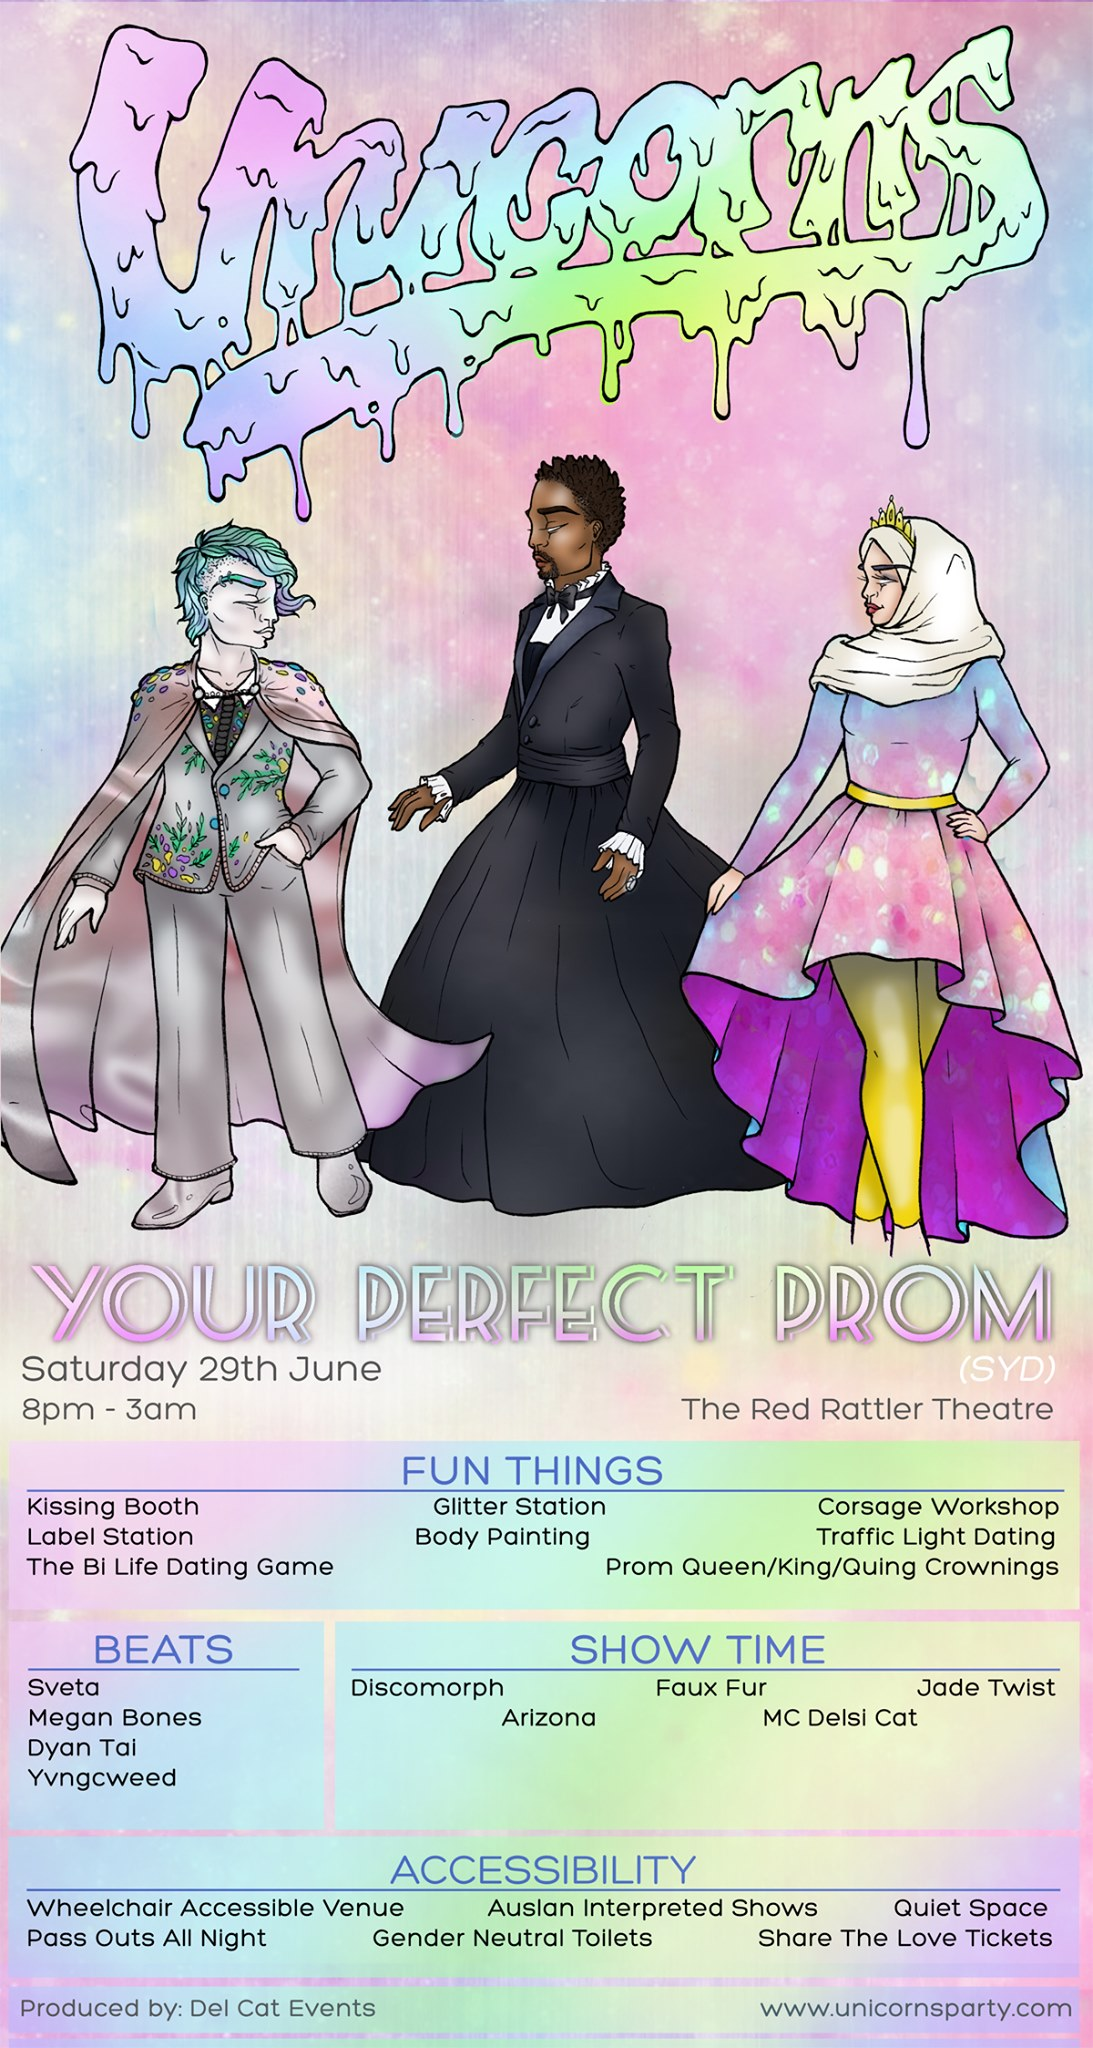 Unicorns - Your Perfect Prom (SYD) - Saturday 29th June8pm - 3amThe Red Rattler TheatreSOLD OUT